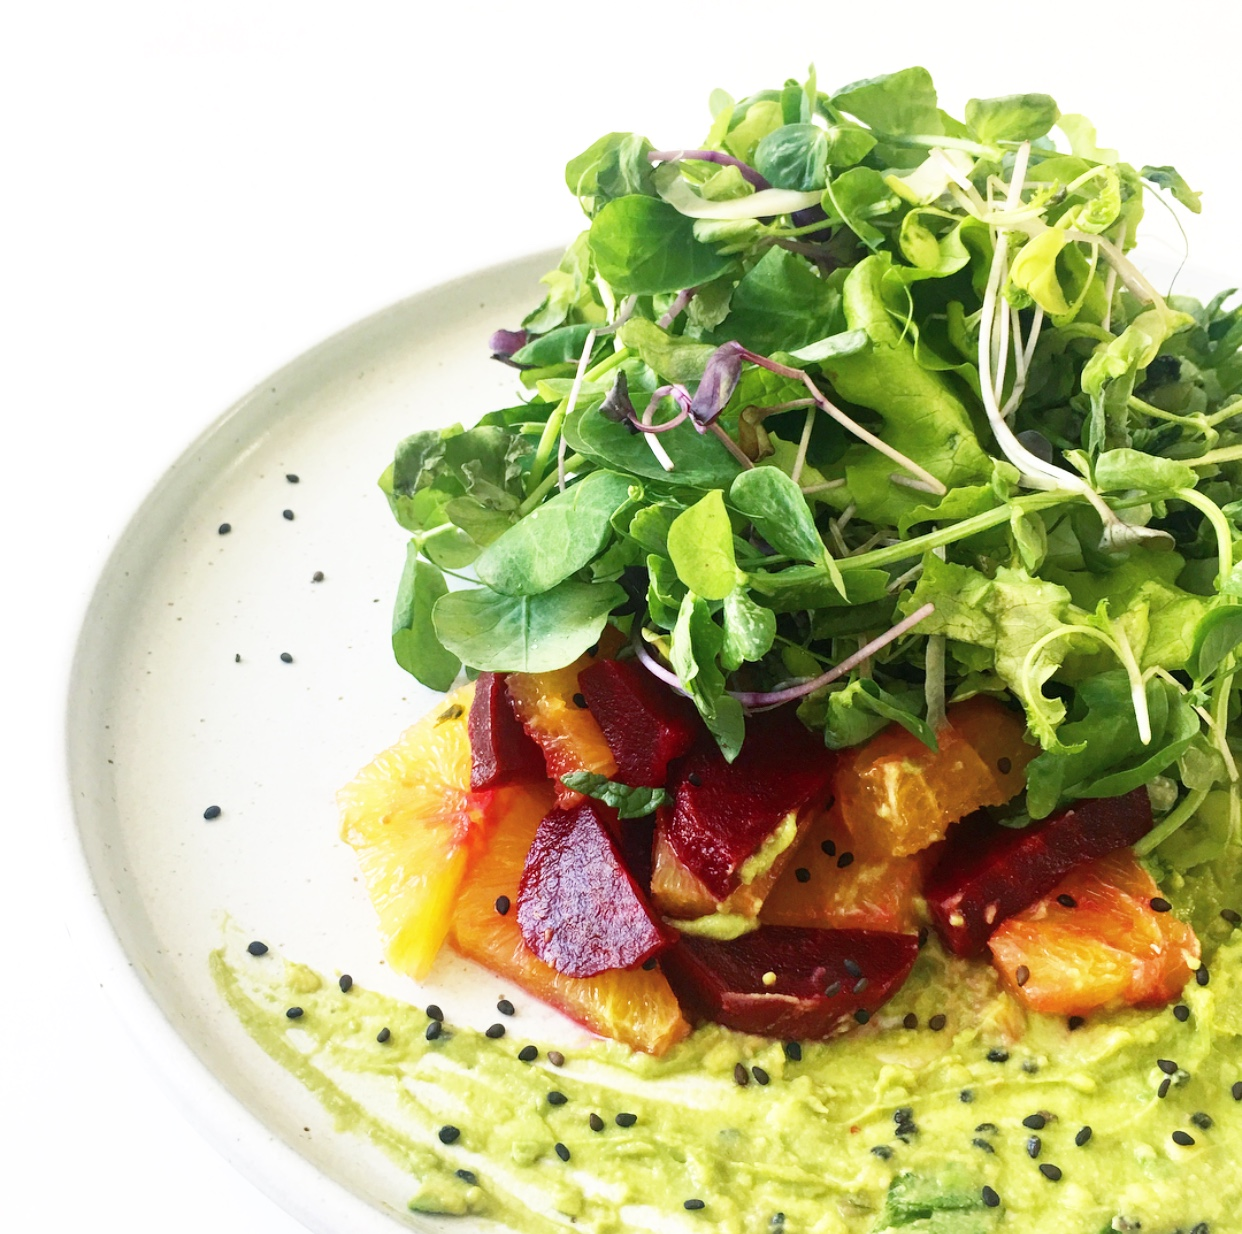 Tangles of local sprouts and greens piled high atop a beautiful medley of beetroot and citrus with a fiery avocado tahini herb dressing —#vegan has never tasted so good. Yum!